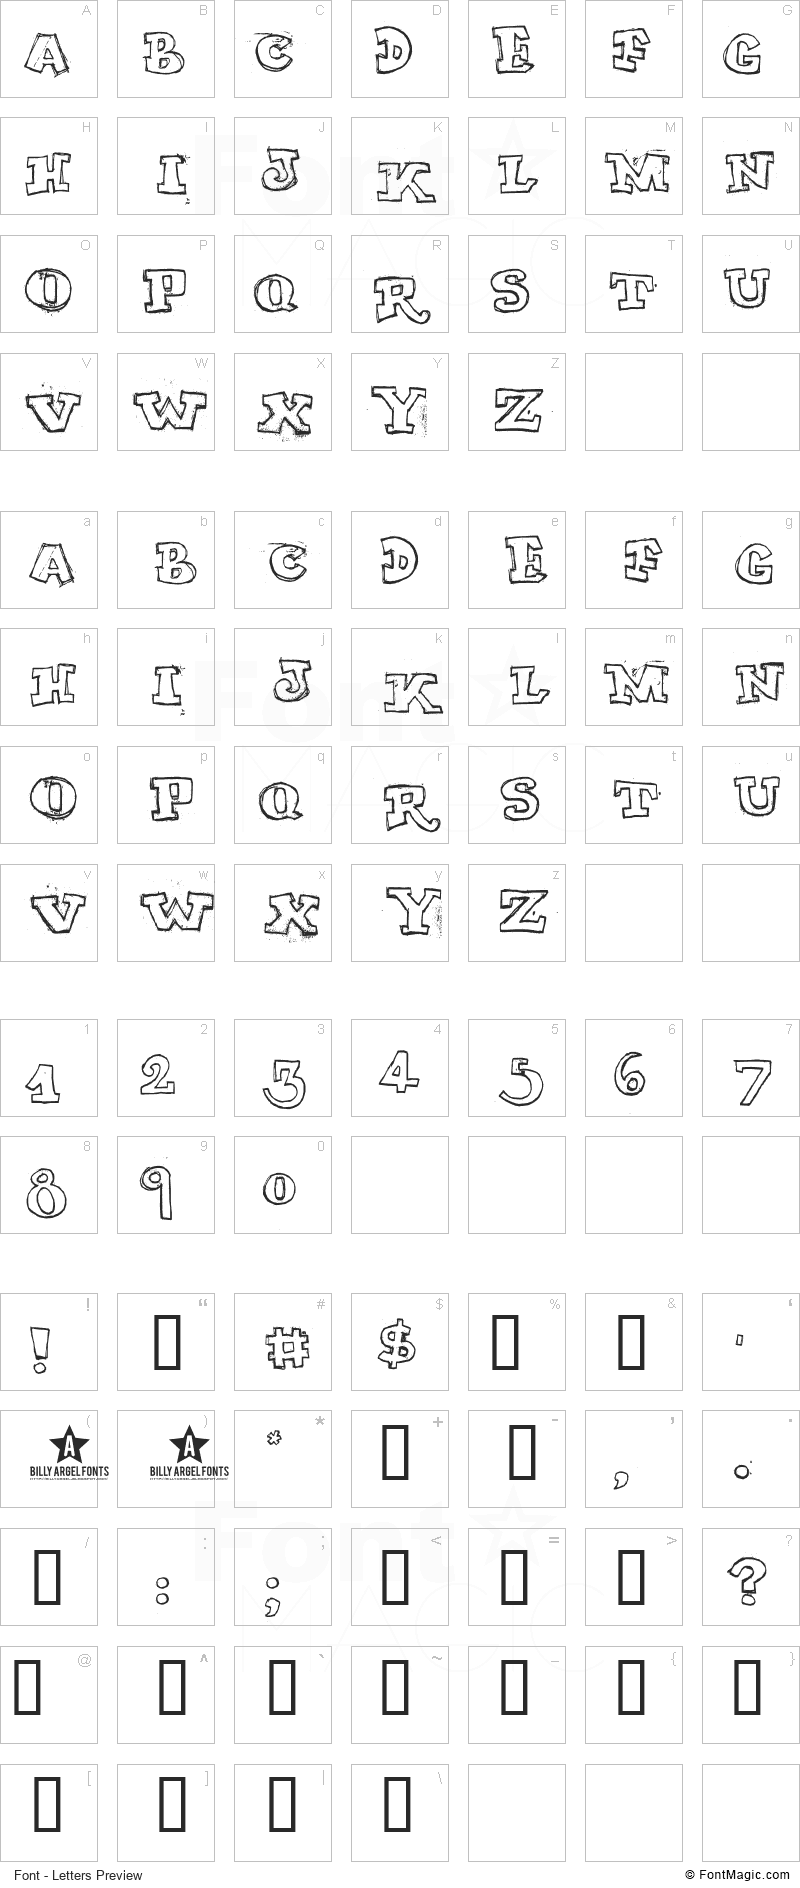 My Turtle Font - All Latters Preview Chart